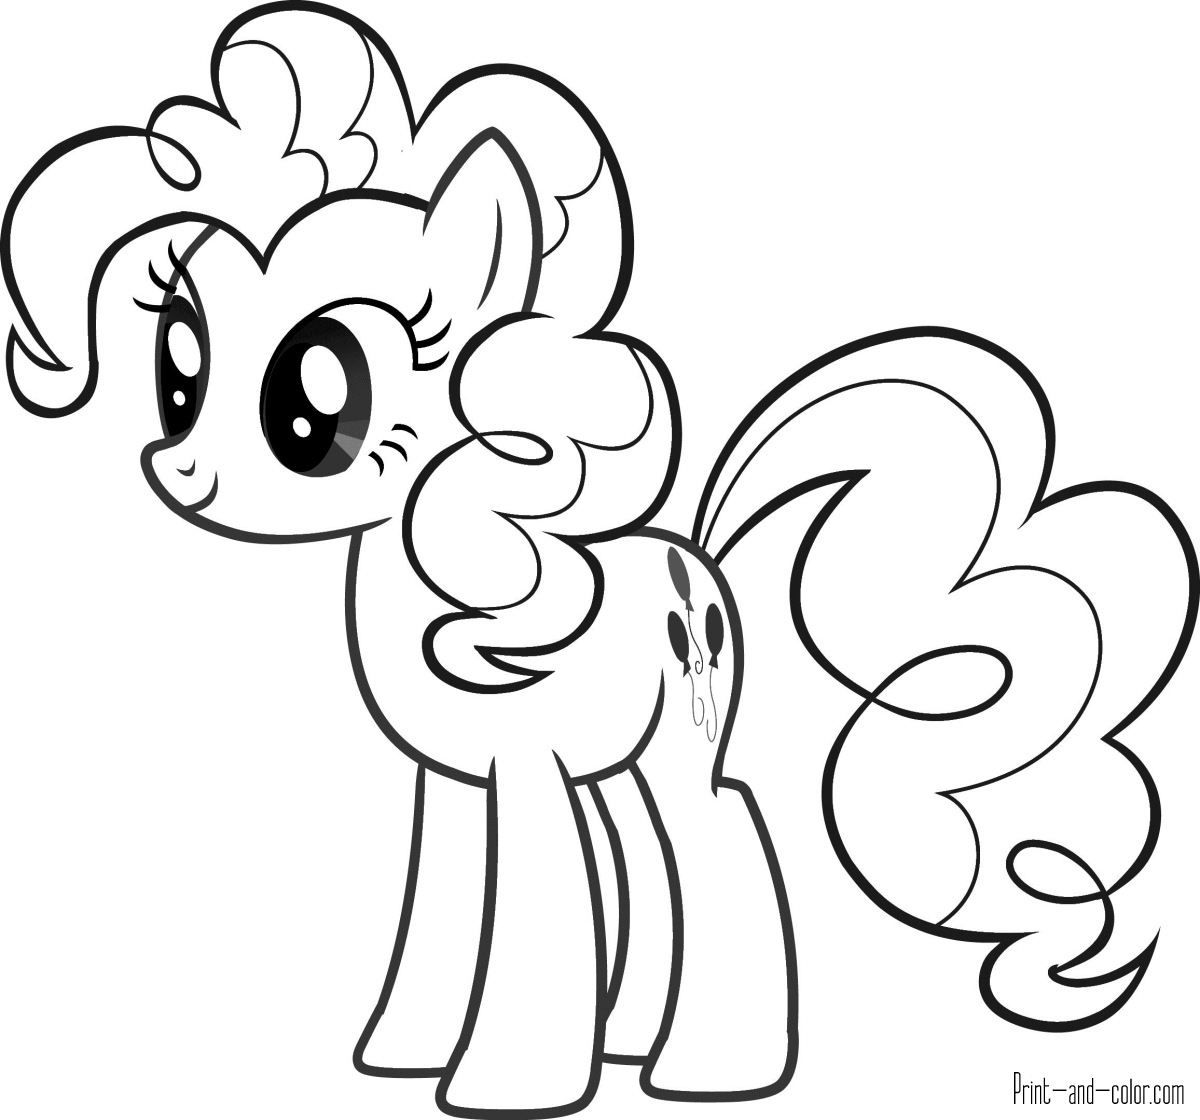 coloring pages for girls my little pony free printable my little pony coloring pages for kids my little pony for girls coloring pages my